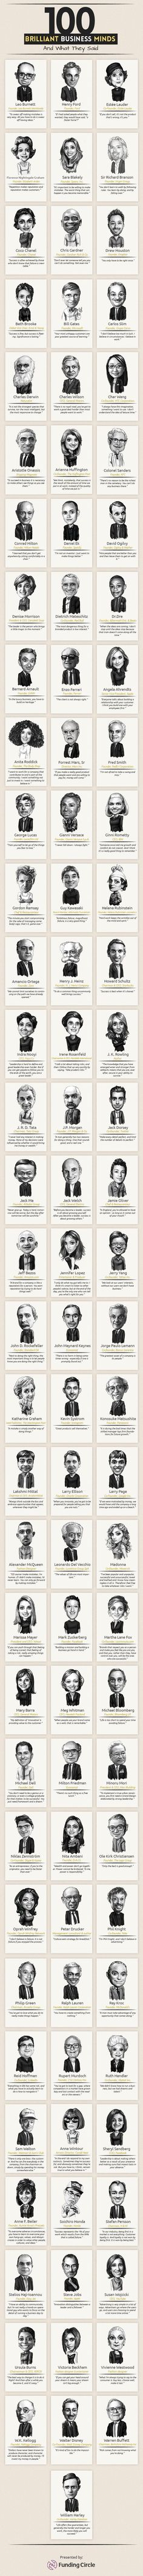 100 Brilliant Business Minds and What They Said #Infographic